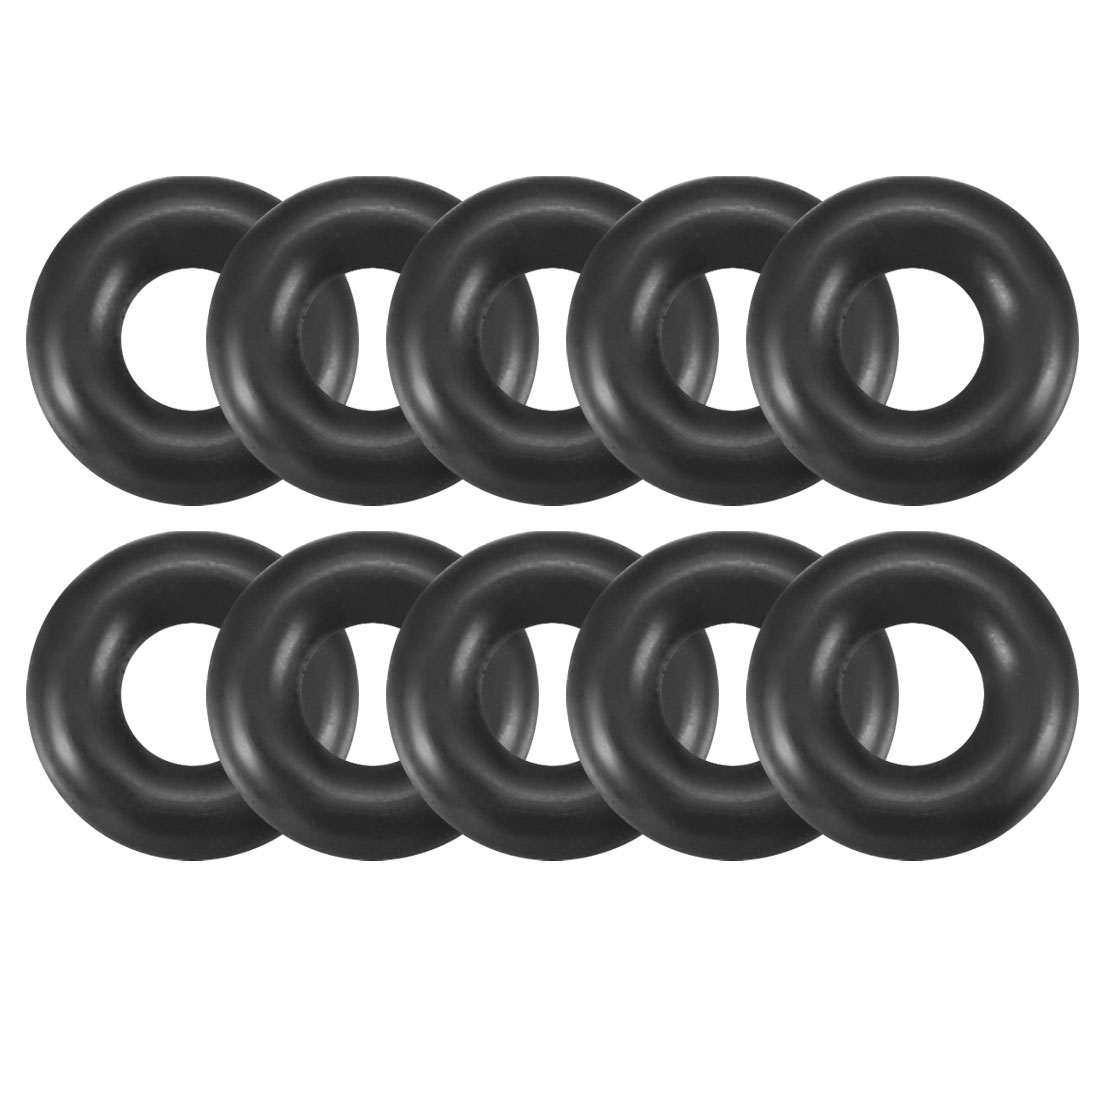 10 Pcs 8mm Outside Dia 2.4mm Thick Oil Filter O Rings Gaskets Black